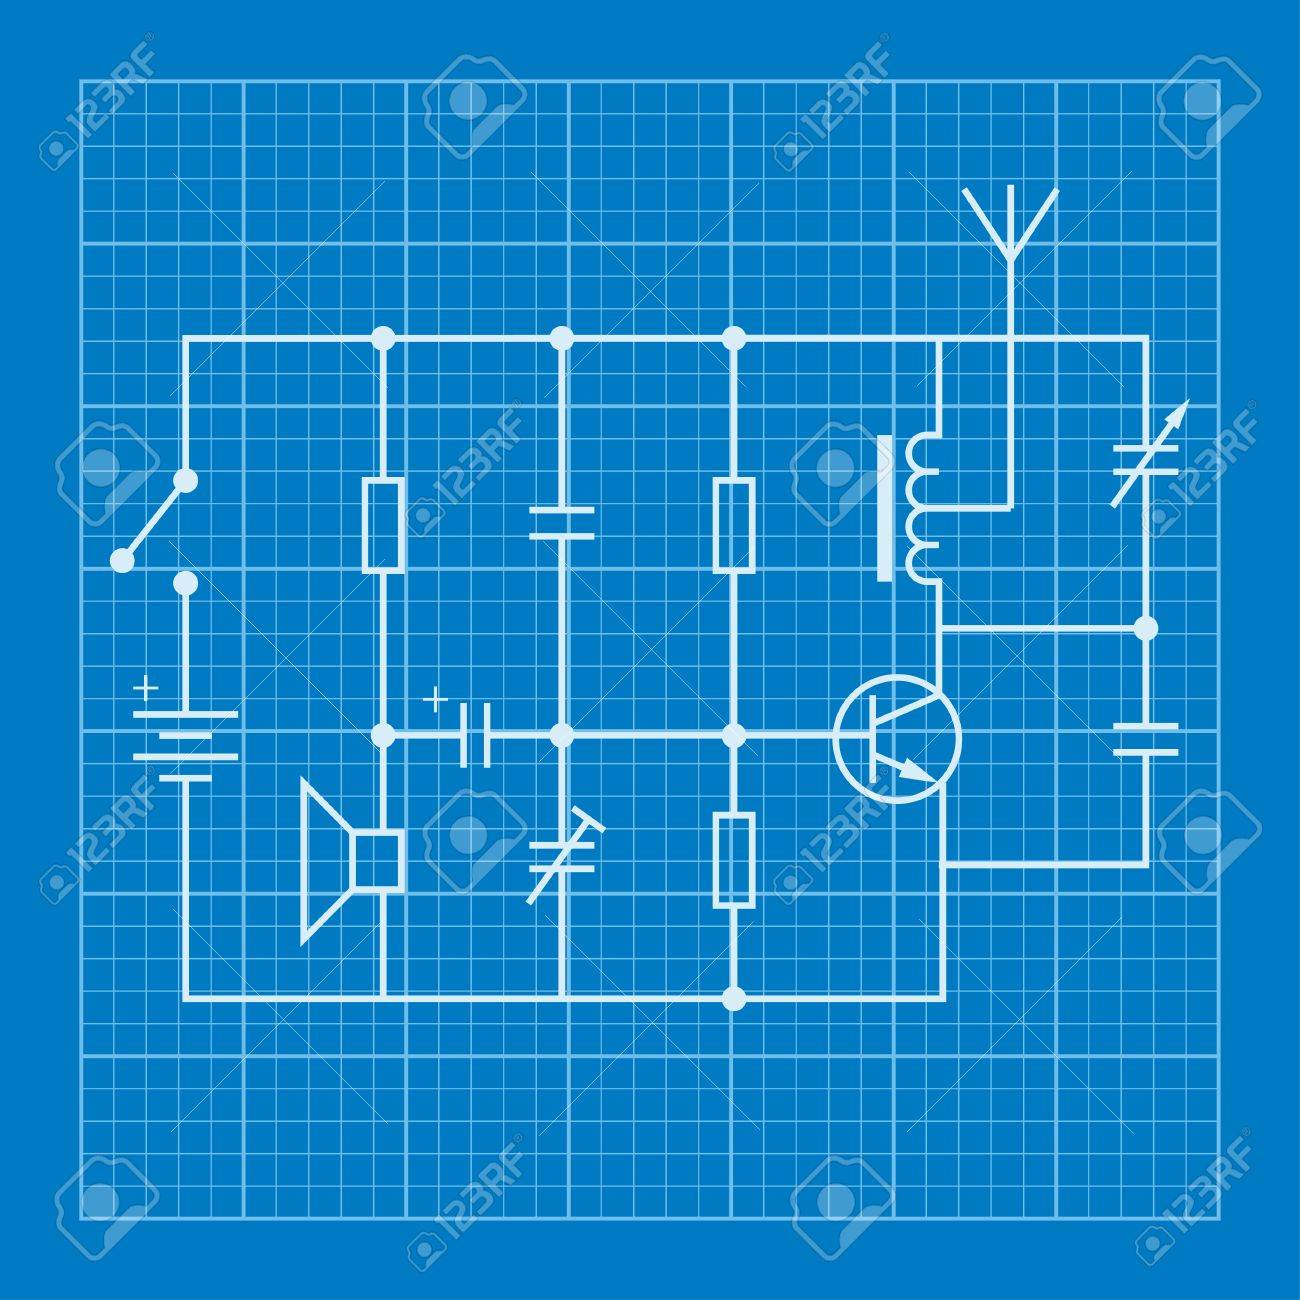 Electronic Circuit Scheme Blueprint Background Royalty Free Cliparts ...